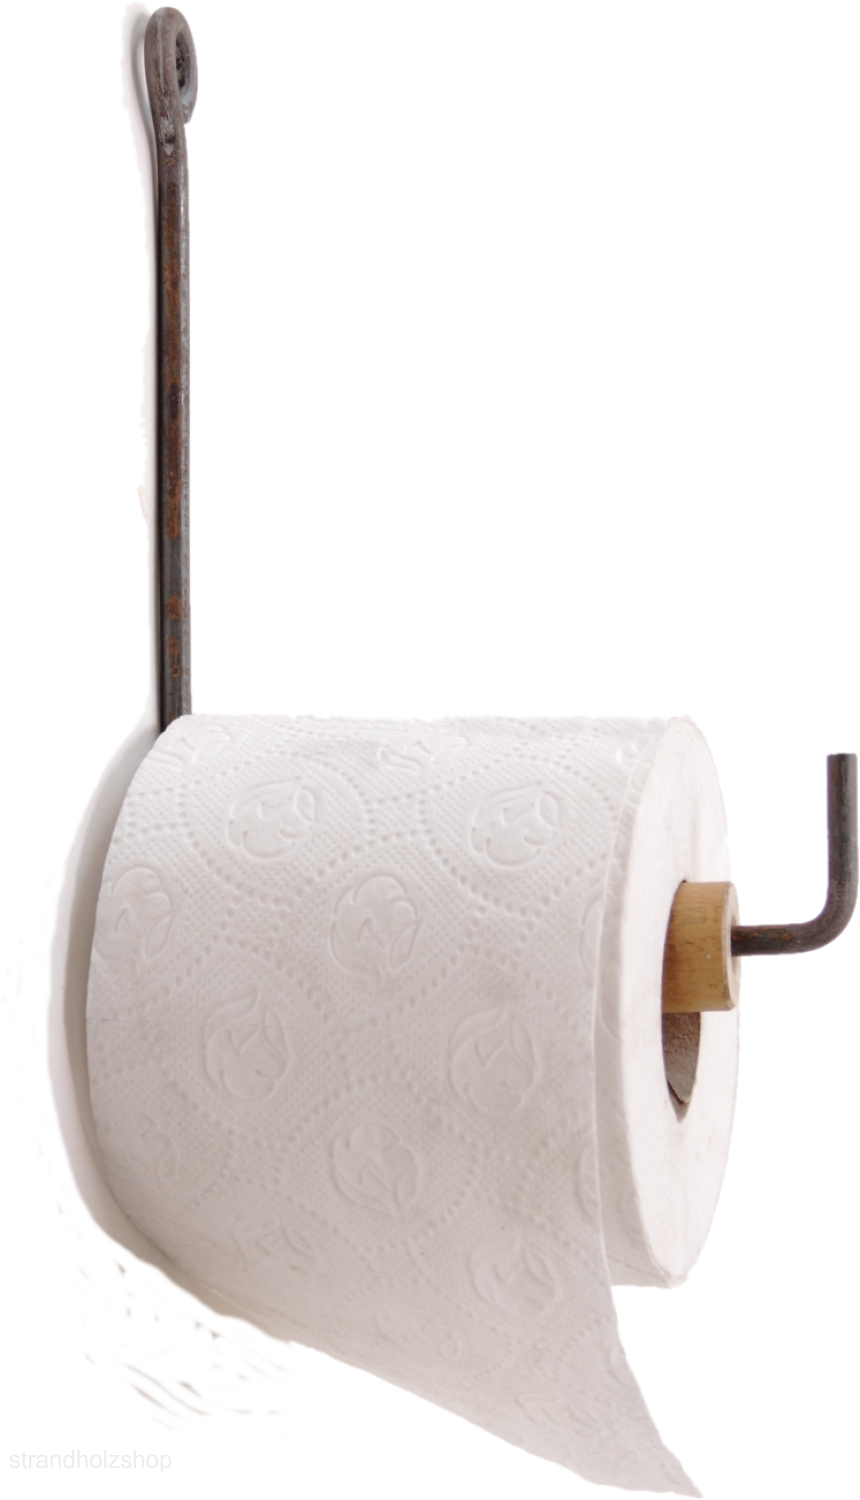 Paper holder toilet paper holder toilet bathroom iron